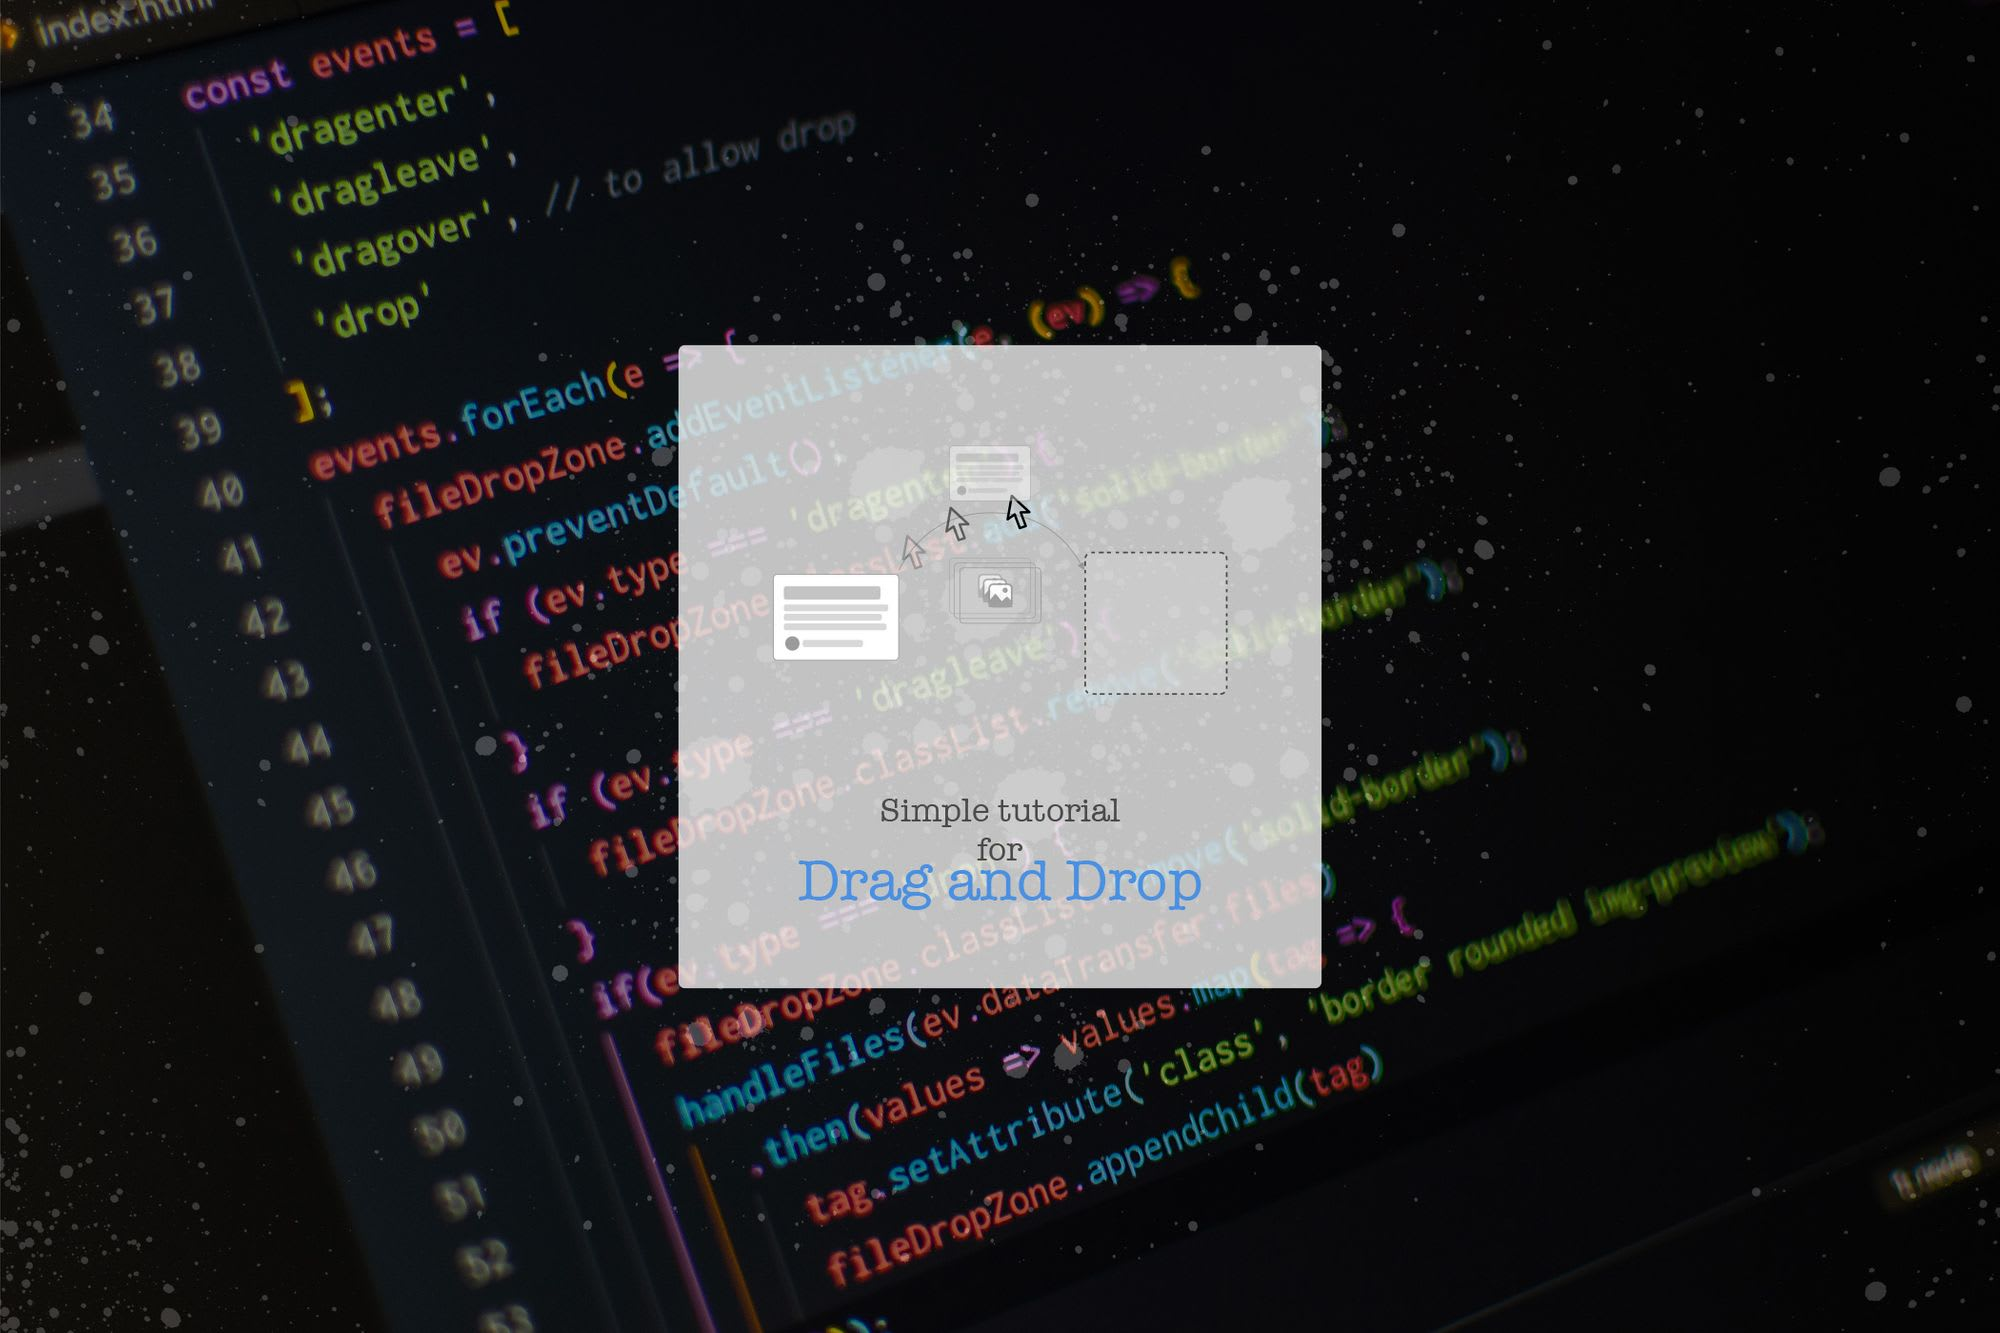 Simple tutorial for Drag and Drop in HTML5